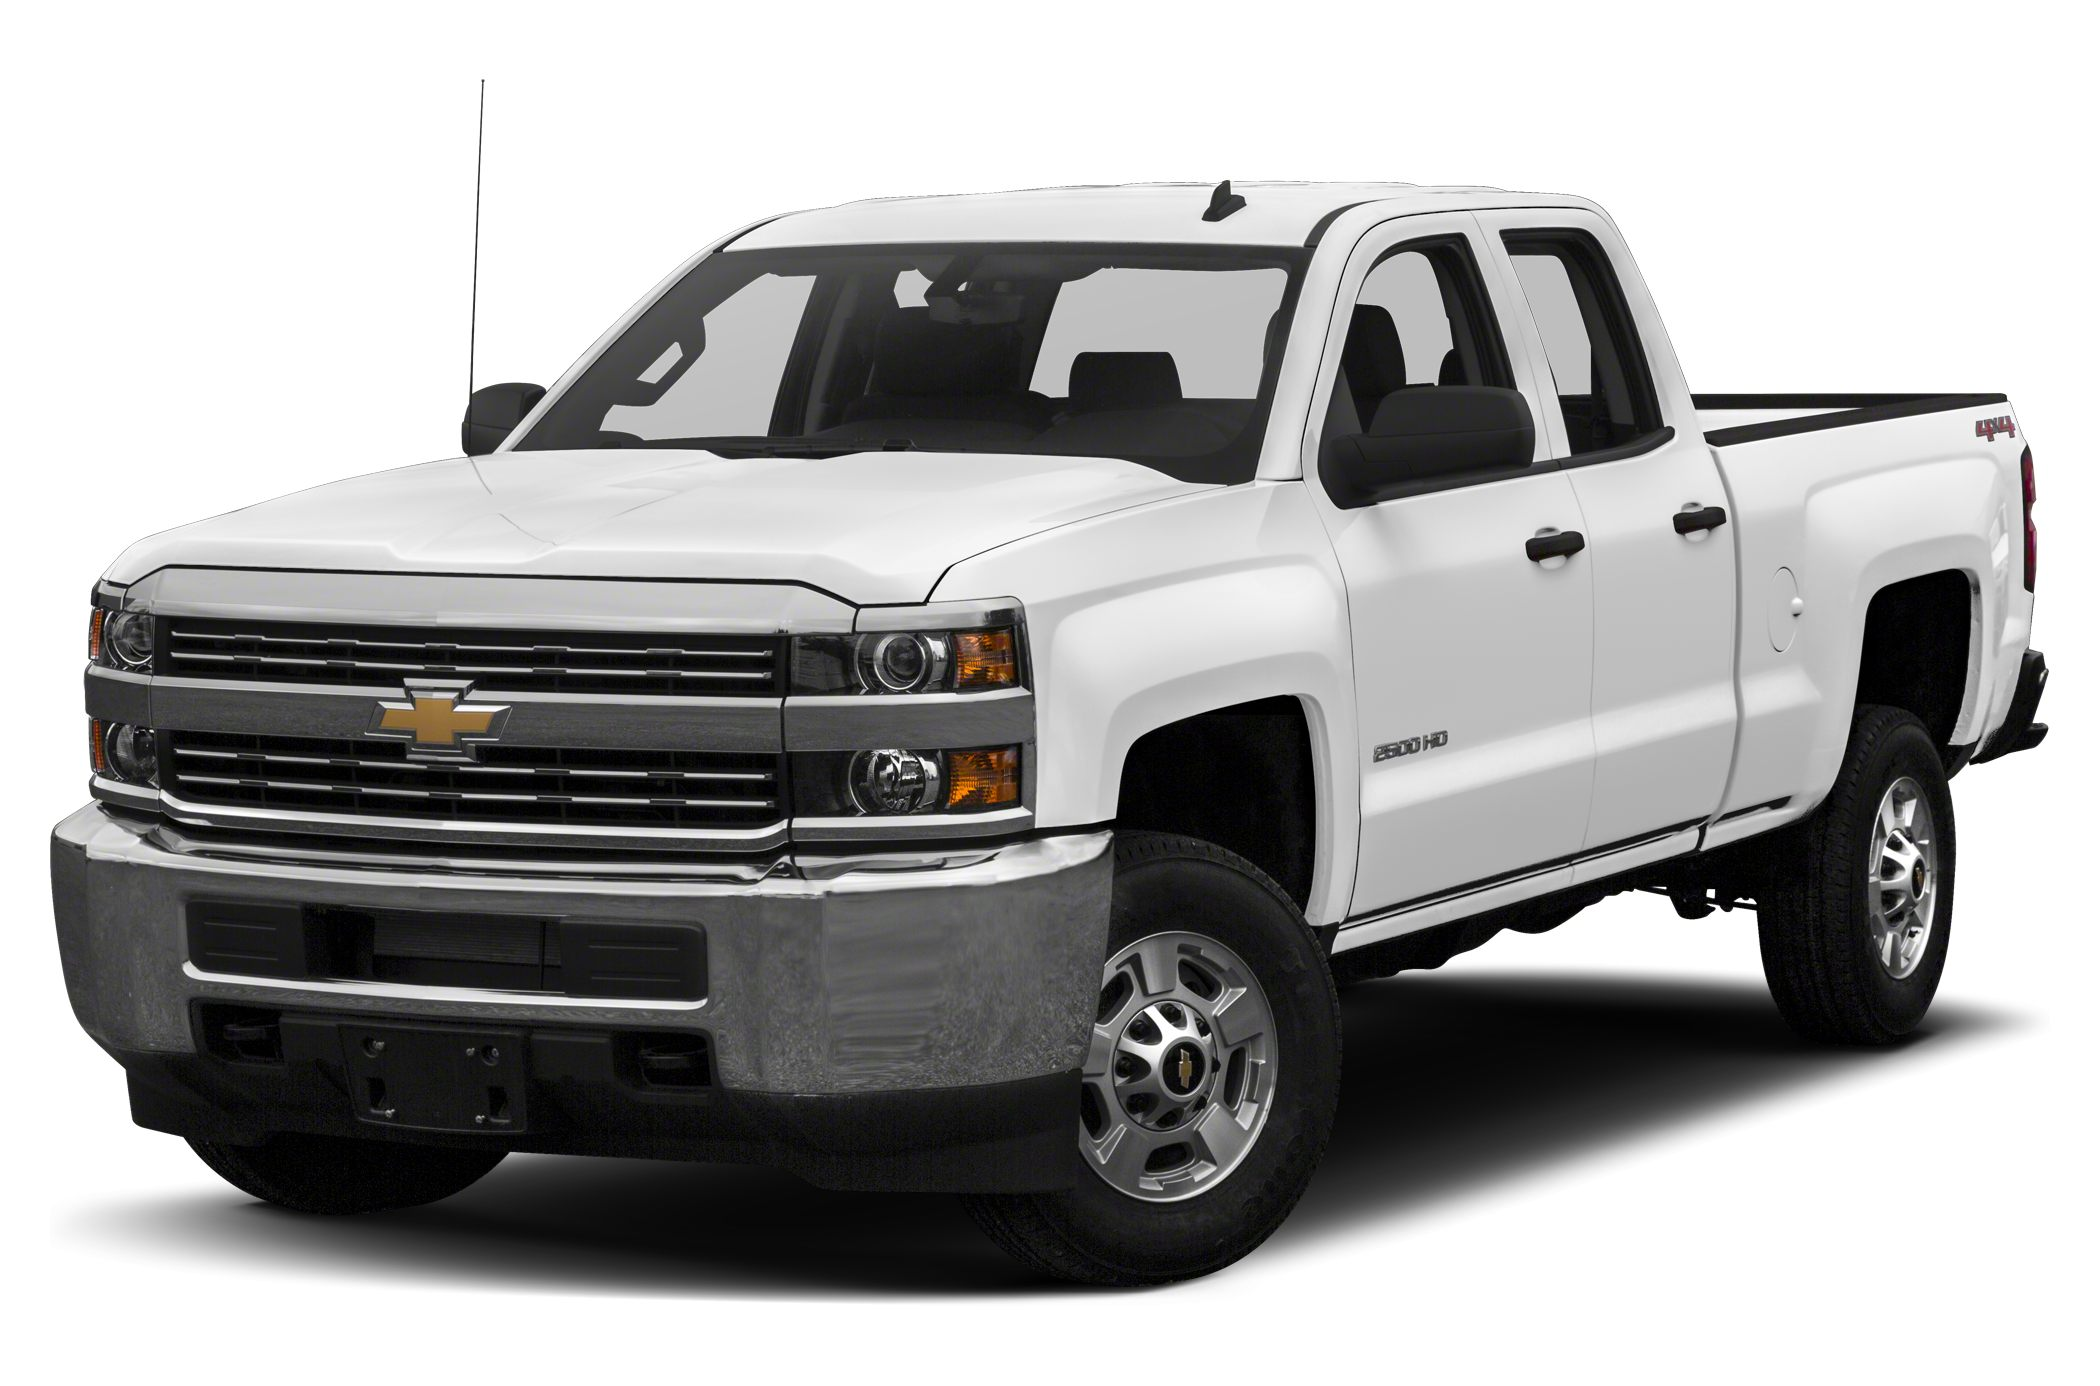 2015 Chevrolet Silverado 2500 WT Extended Cab Pickup for sale in Comanche for $49,630 with 0 miles